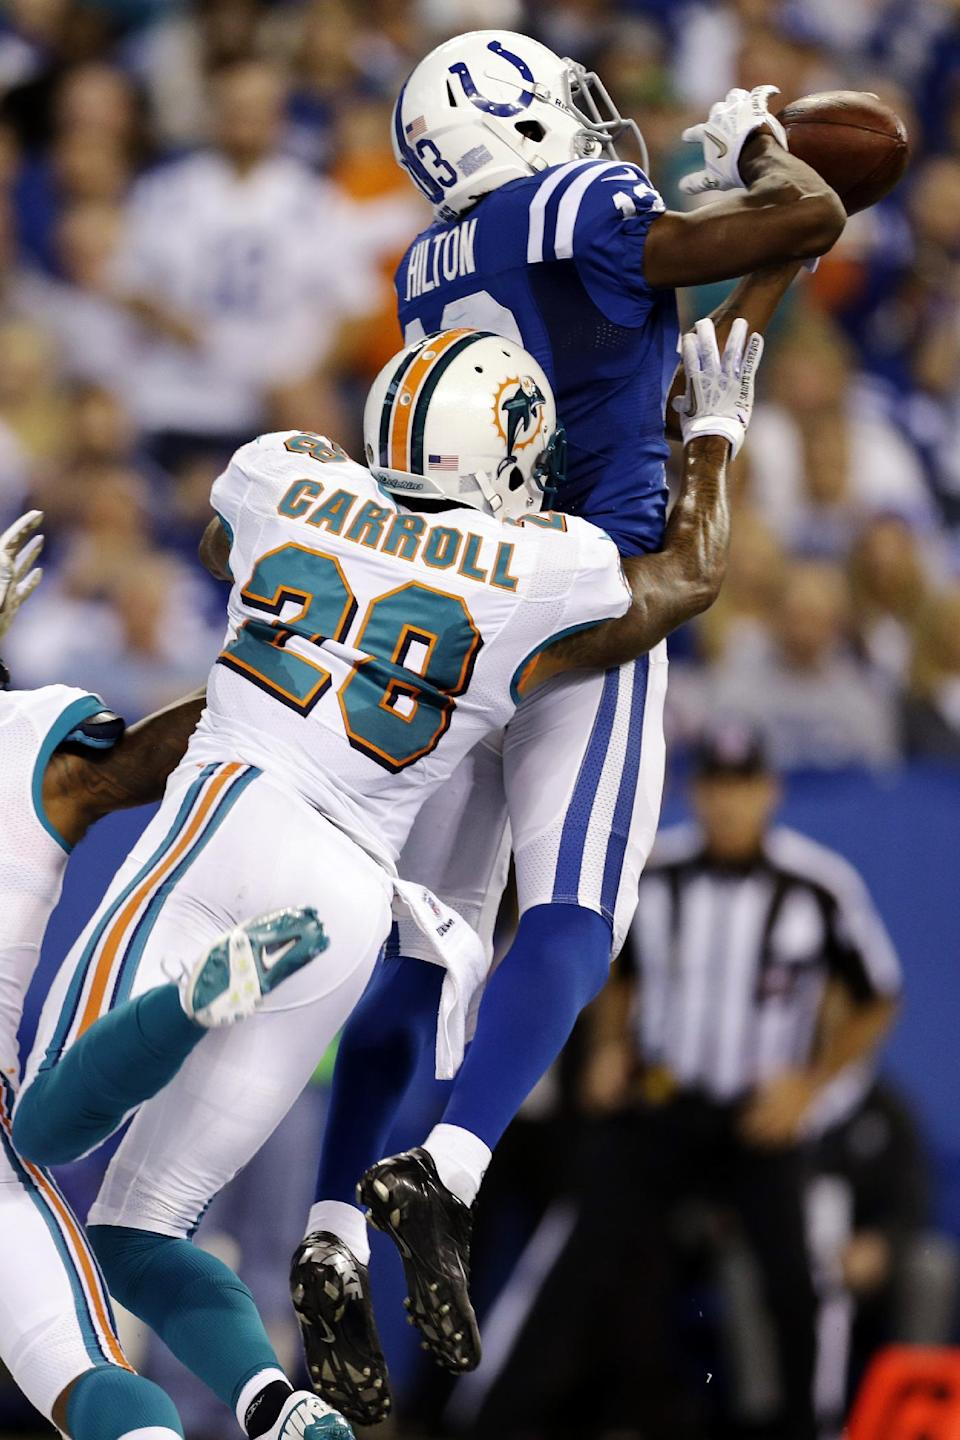 Indianapolis Colts wide receiver T.Y. Hilton, top, makes a catch for a touchdown over Miami Dolphins cornerback Nolan Carroll during the second half of an NFL football game in Indianapolis, Sunday, Nov. 4, 2012. (AP Photo/Darron Cummings)